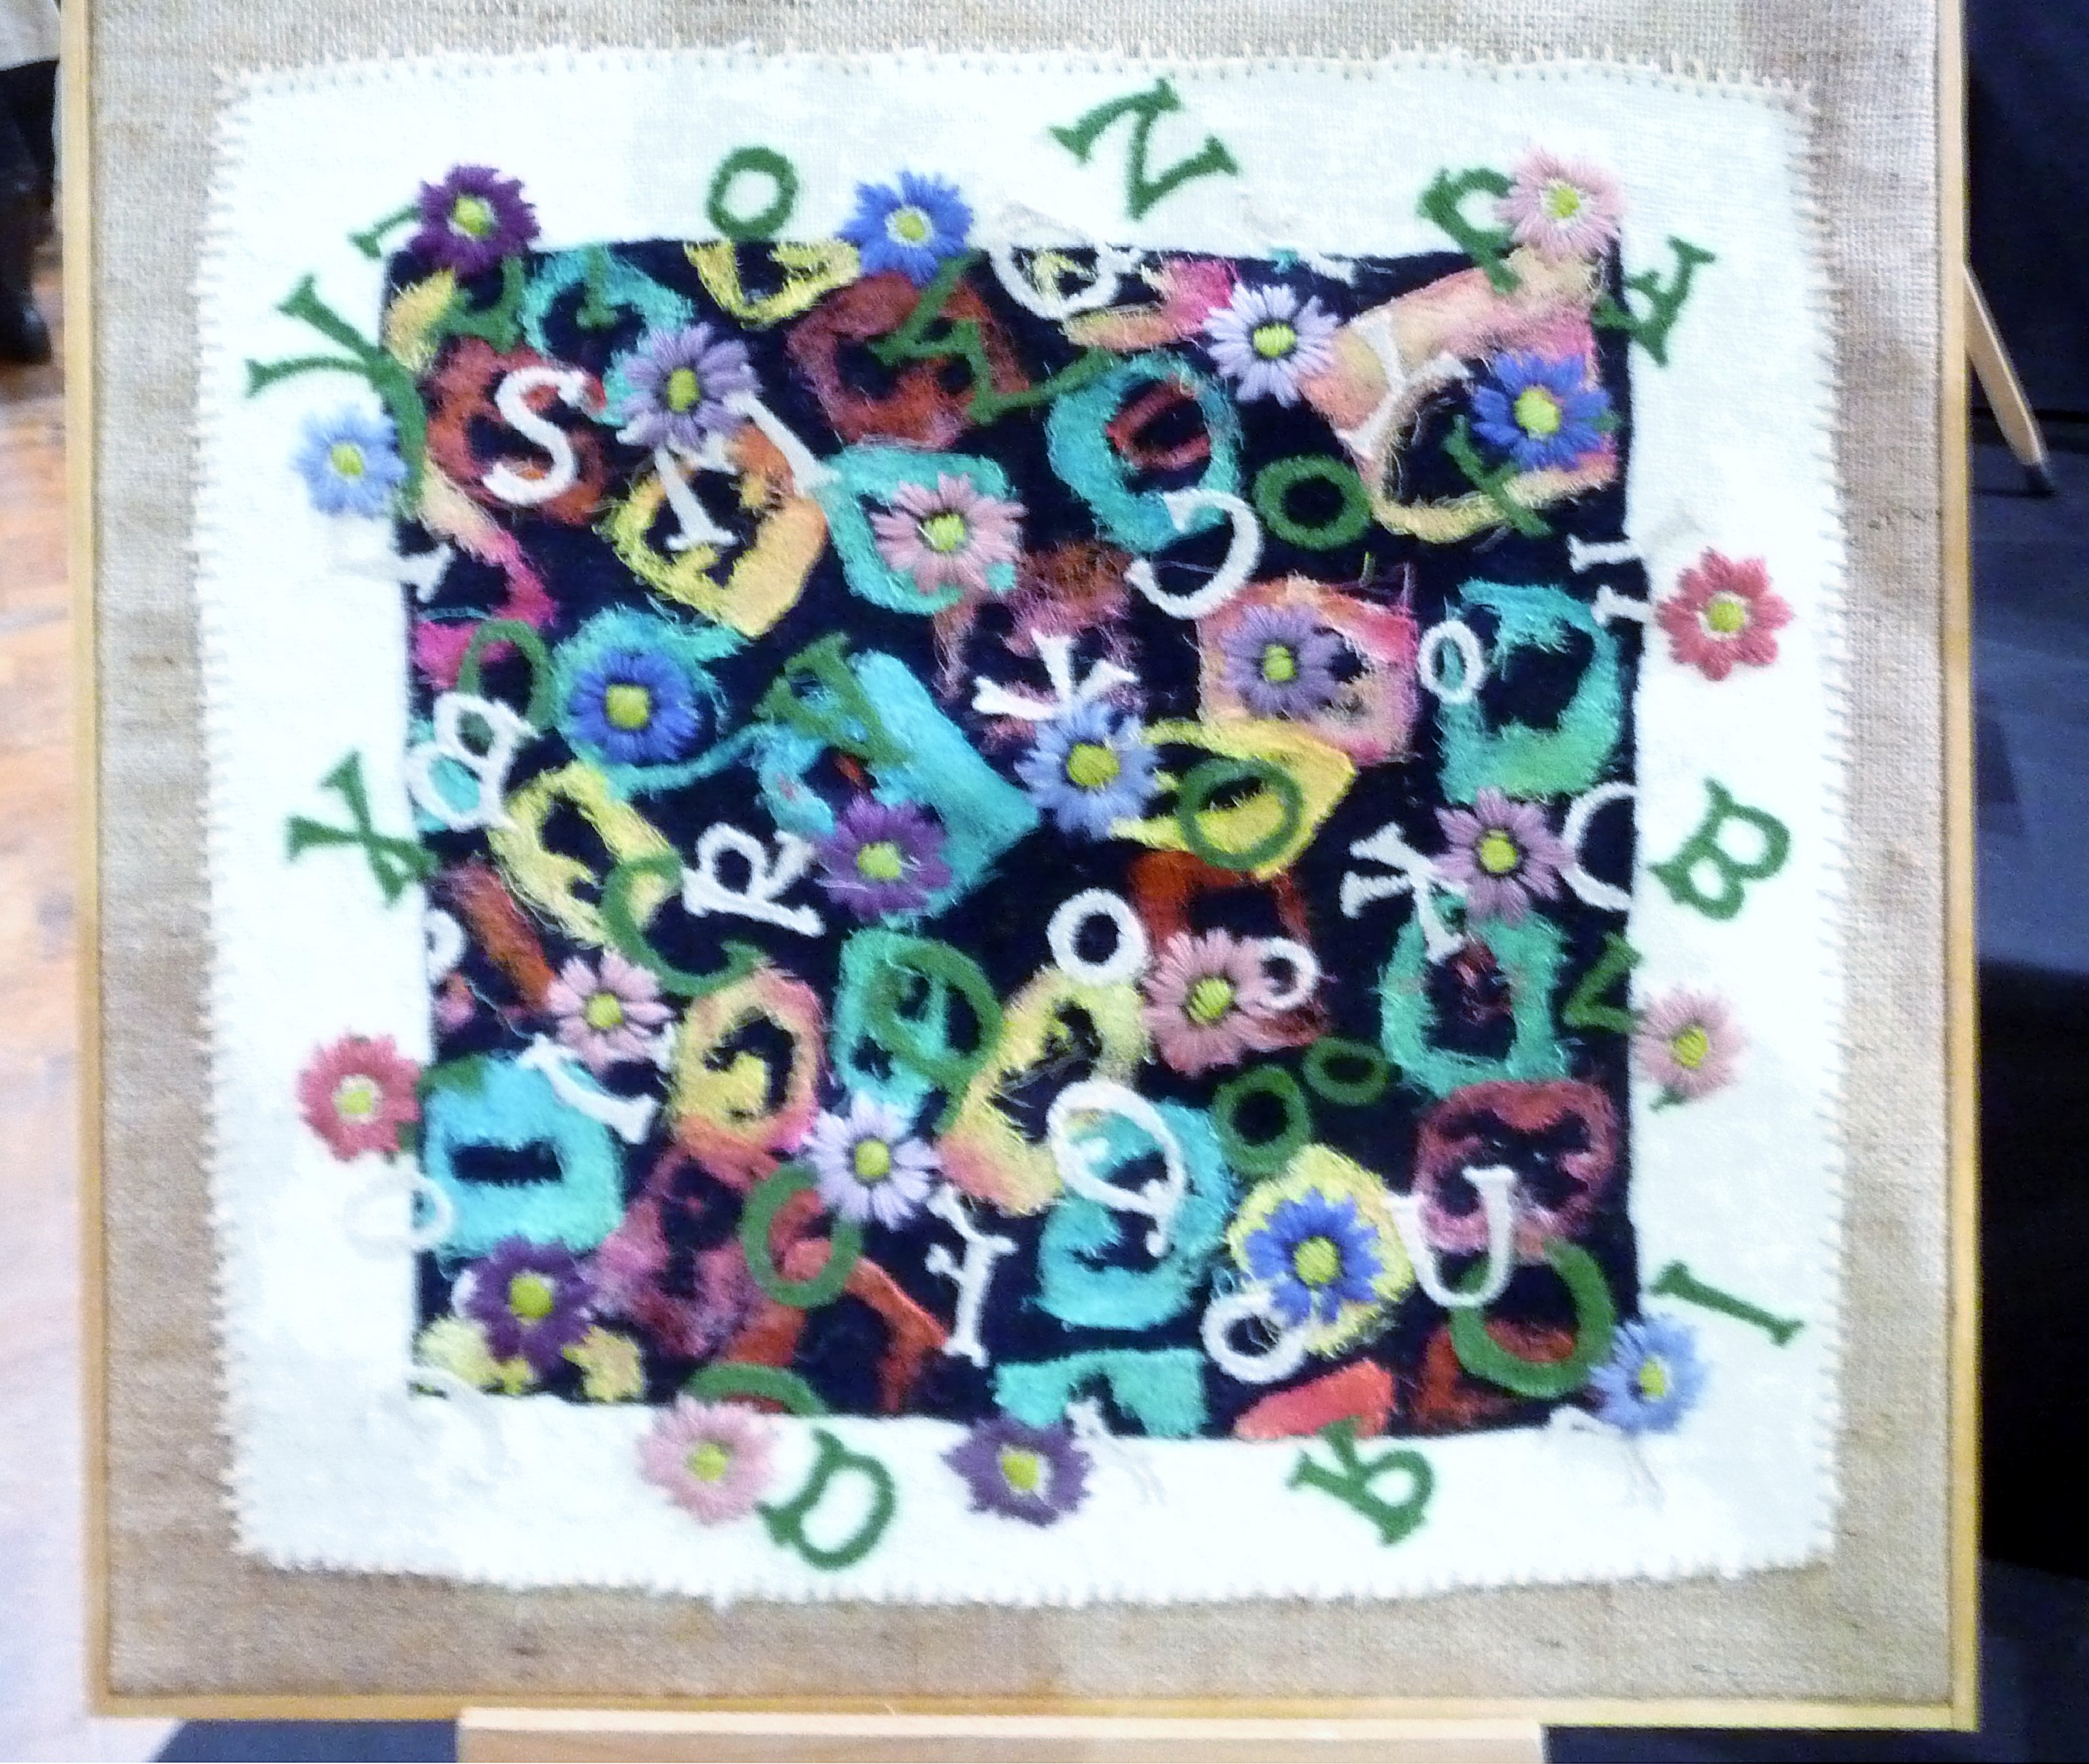 SAY IT WITH FLOWERS by Jane Jenkins, reclcled cheesecloth, knitted garments & blanket on hessian